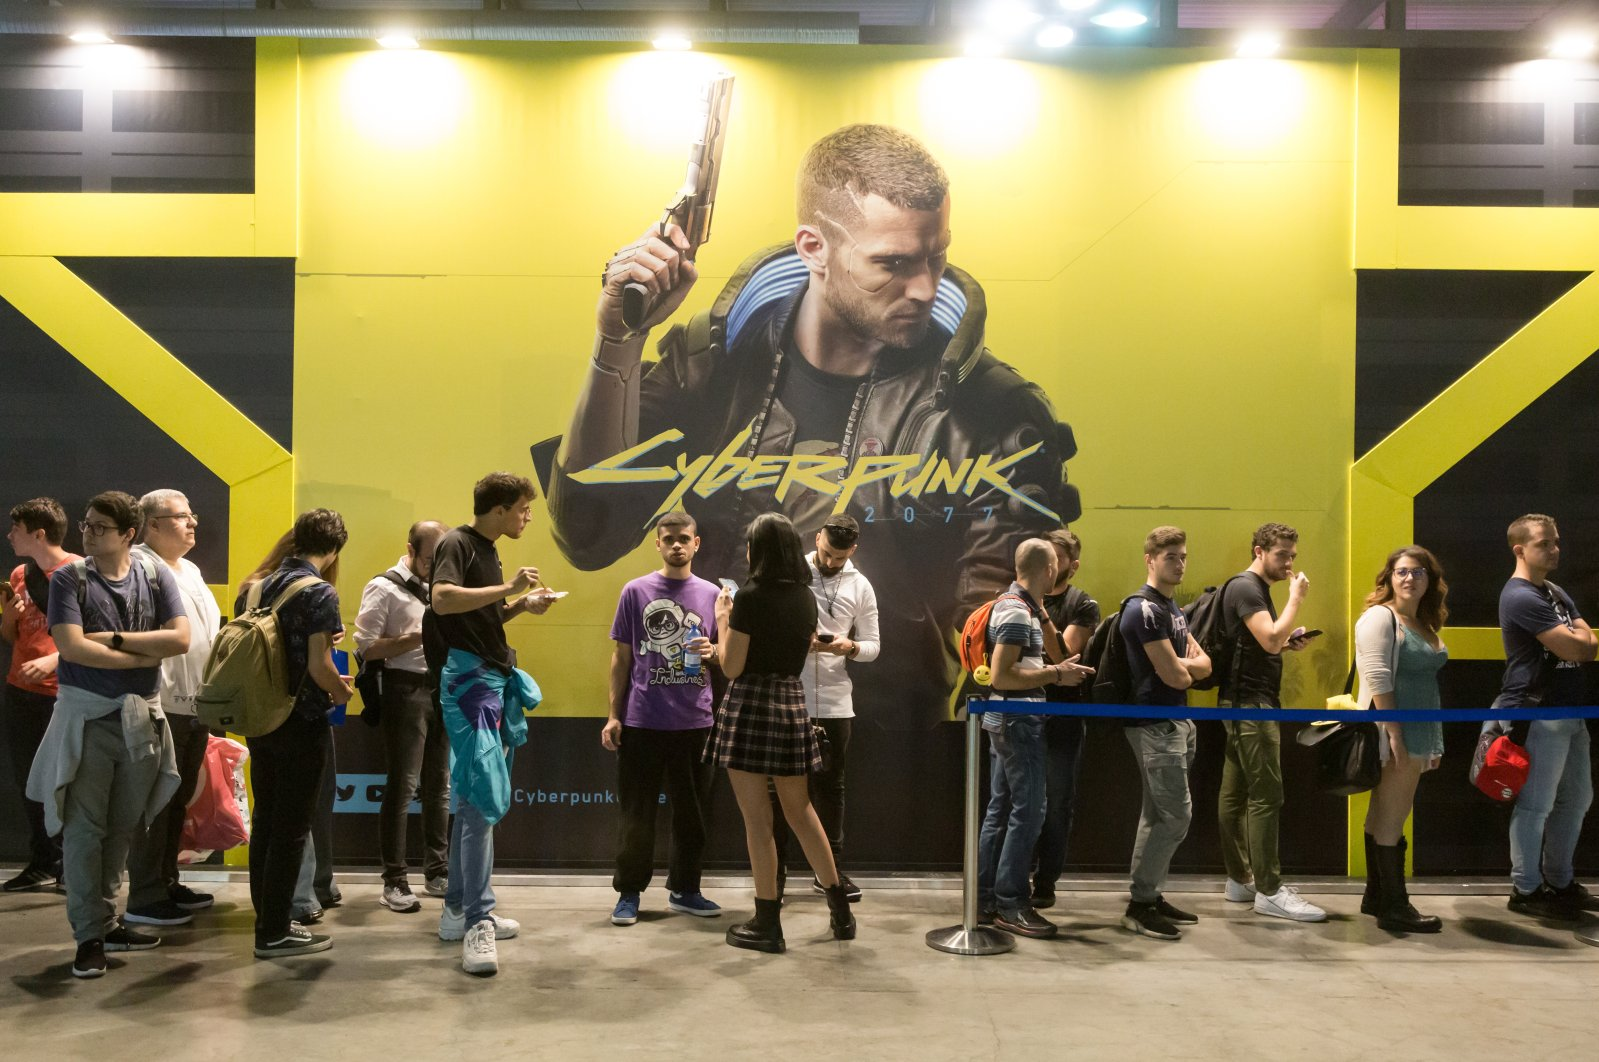 People visit Milan Games Week 2019, an event dedicated to video games and electronic entertainment, on Sept. 27, 2019, in Milan, Italy. (Shutterstock Photo)